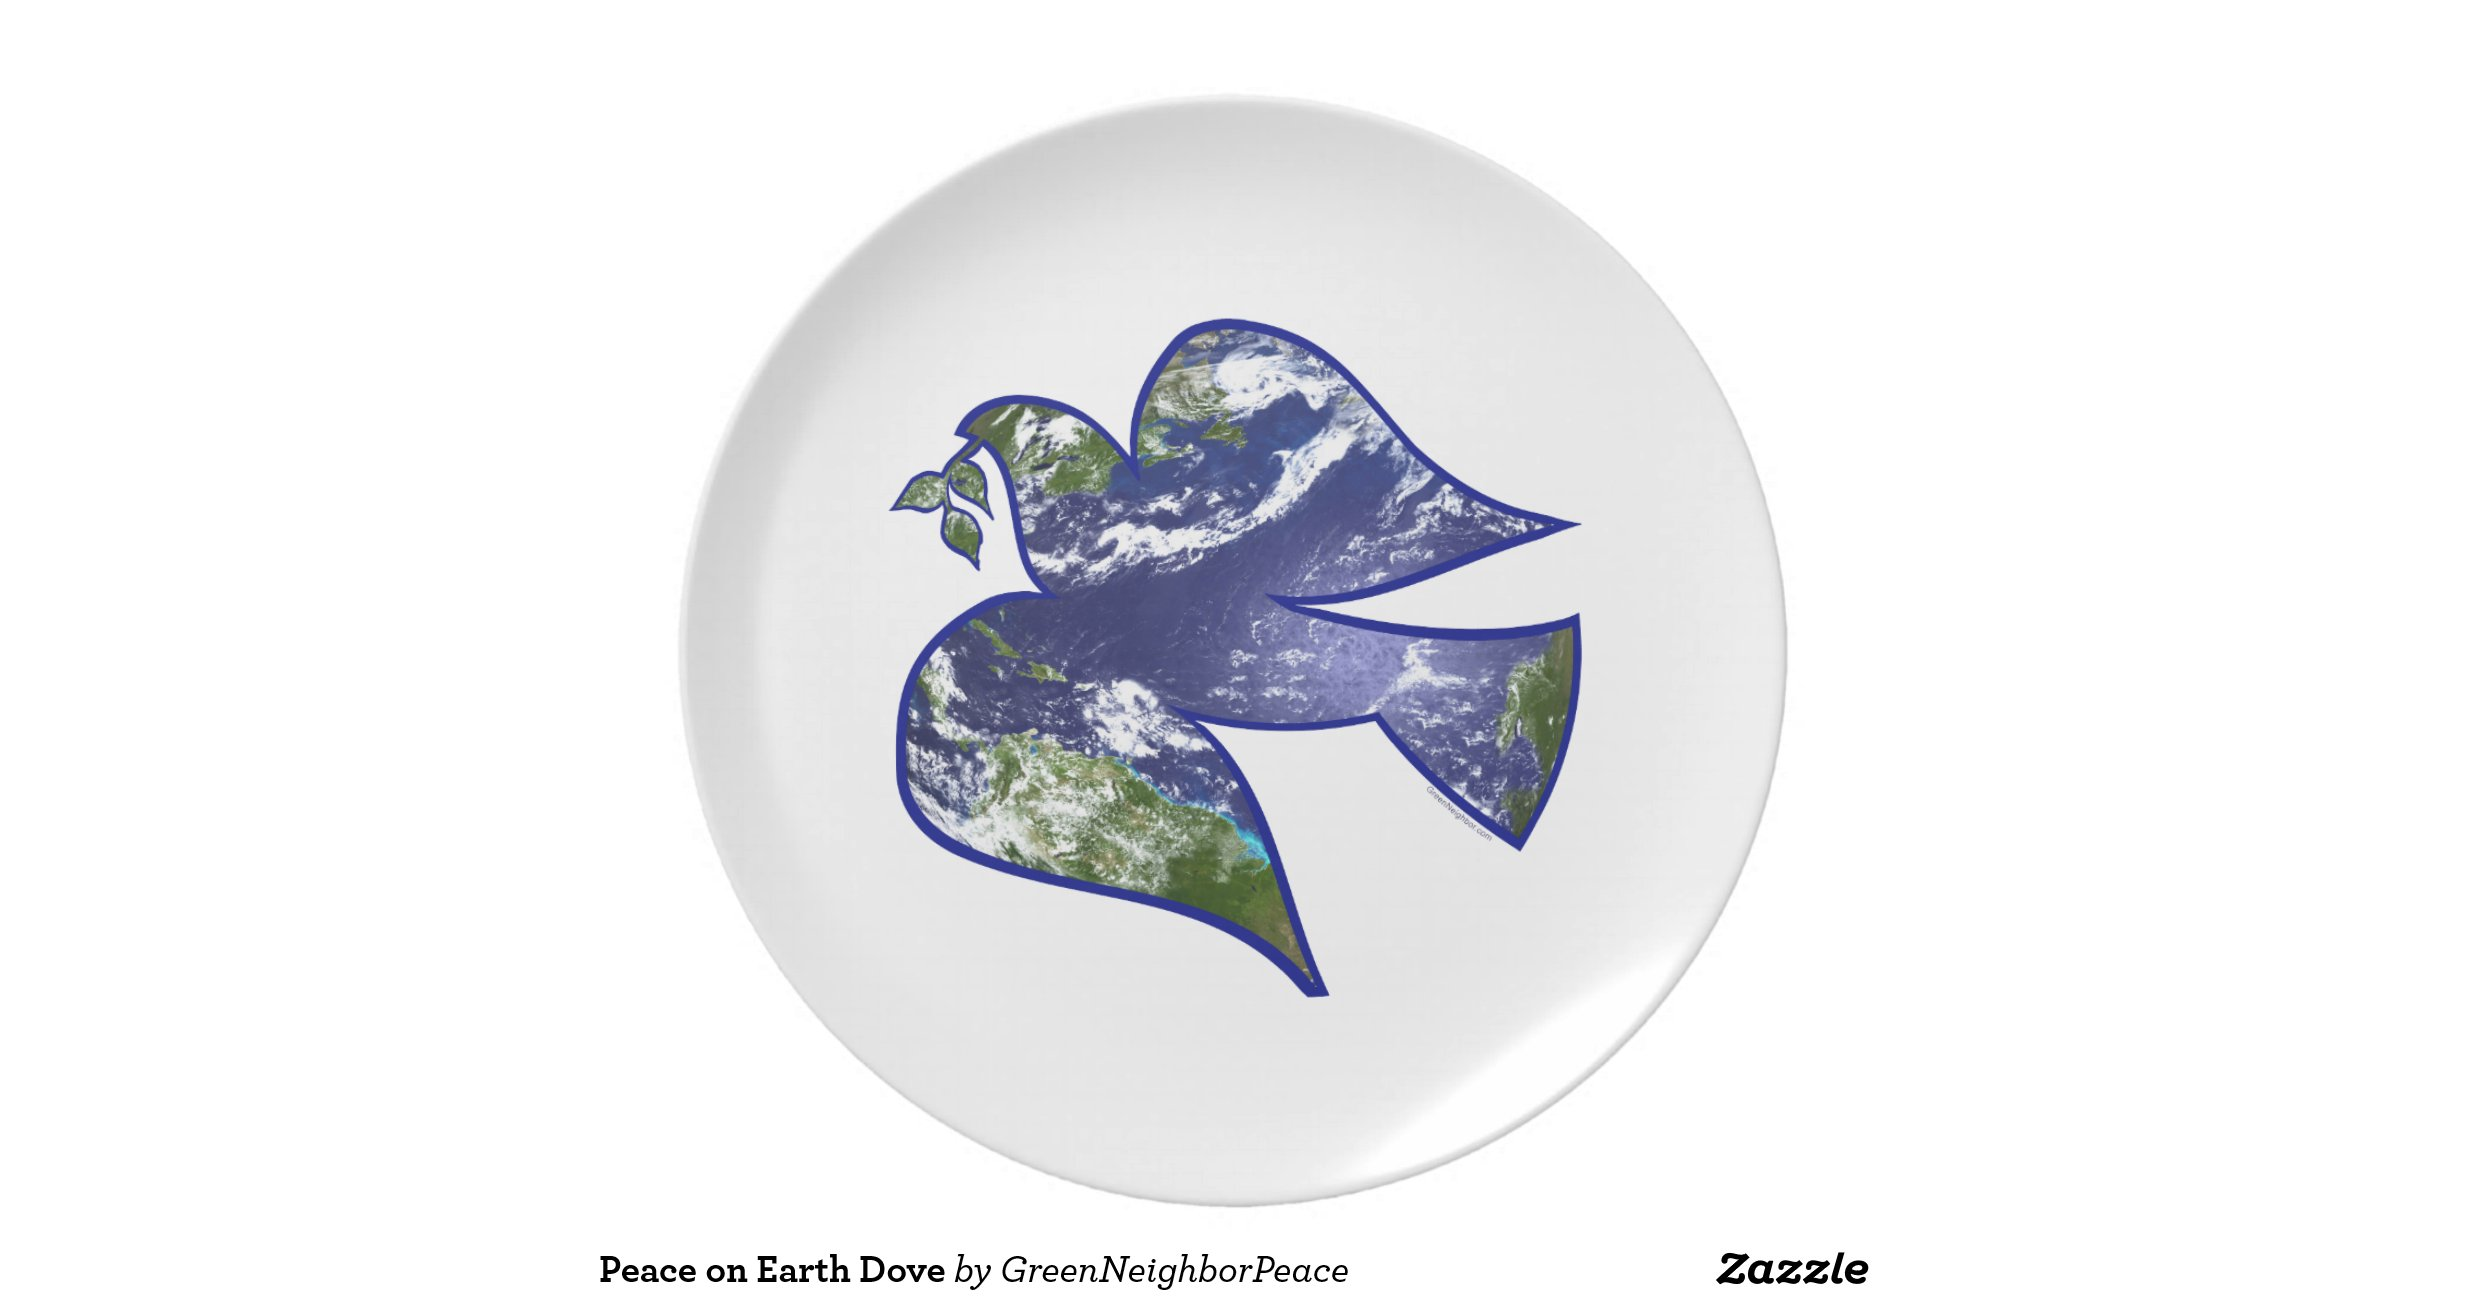 peace on earth dove dinner plates zazzle